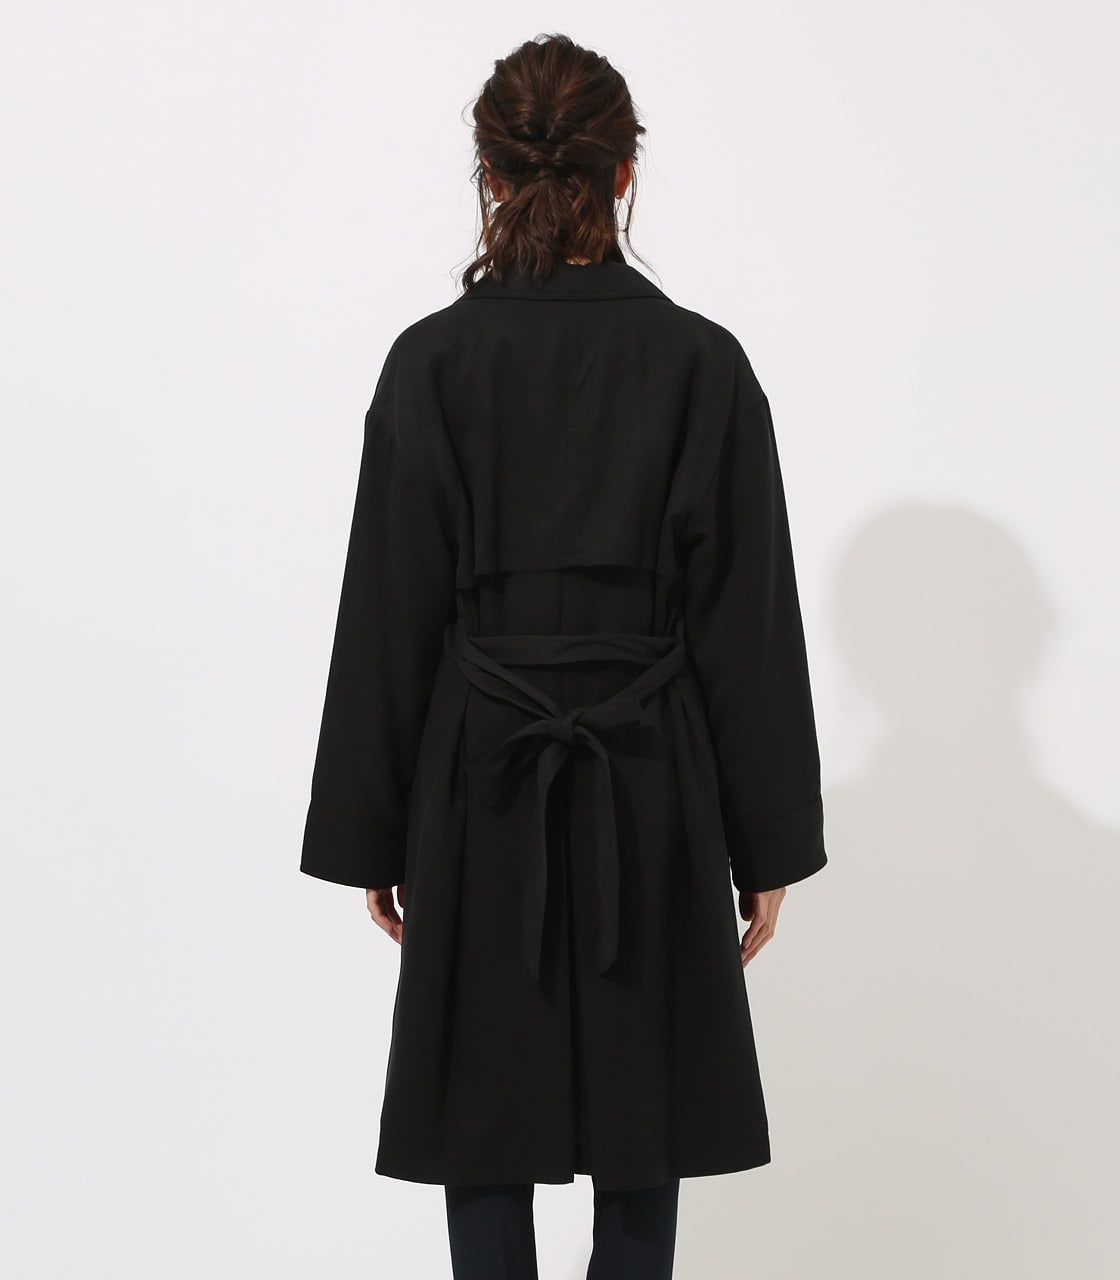 LYOCELL TRENCH COAT  詳細画像 BLK 7